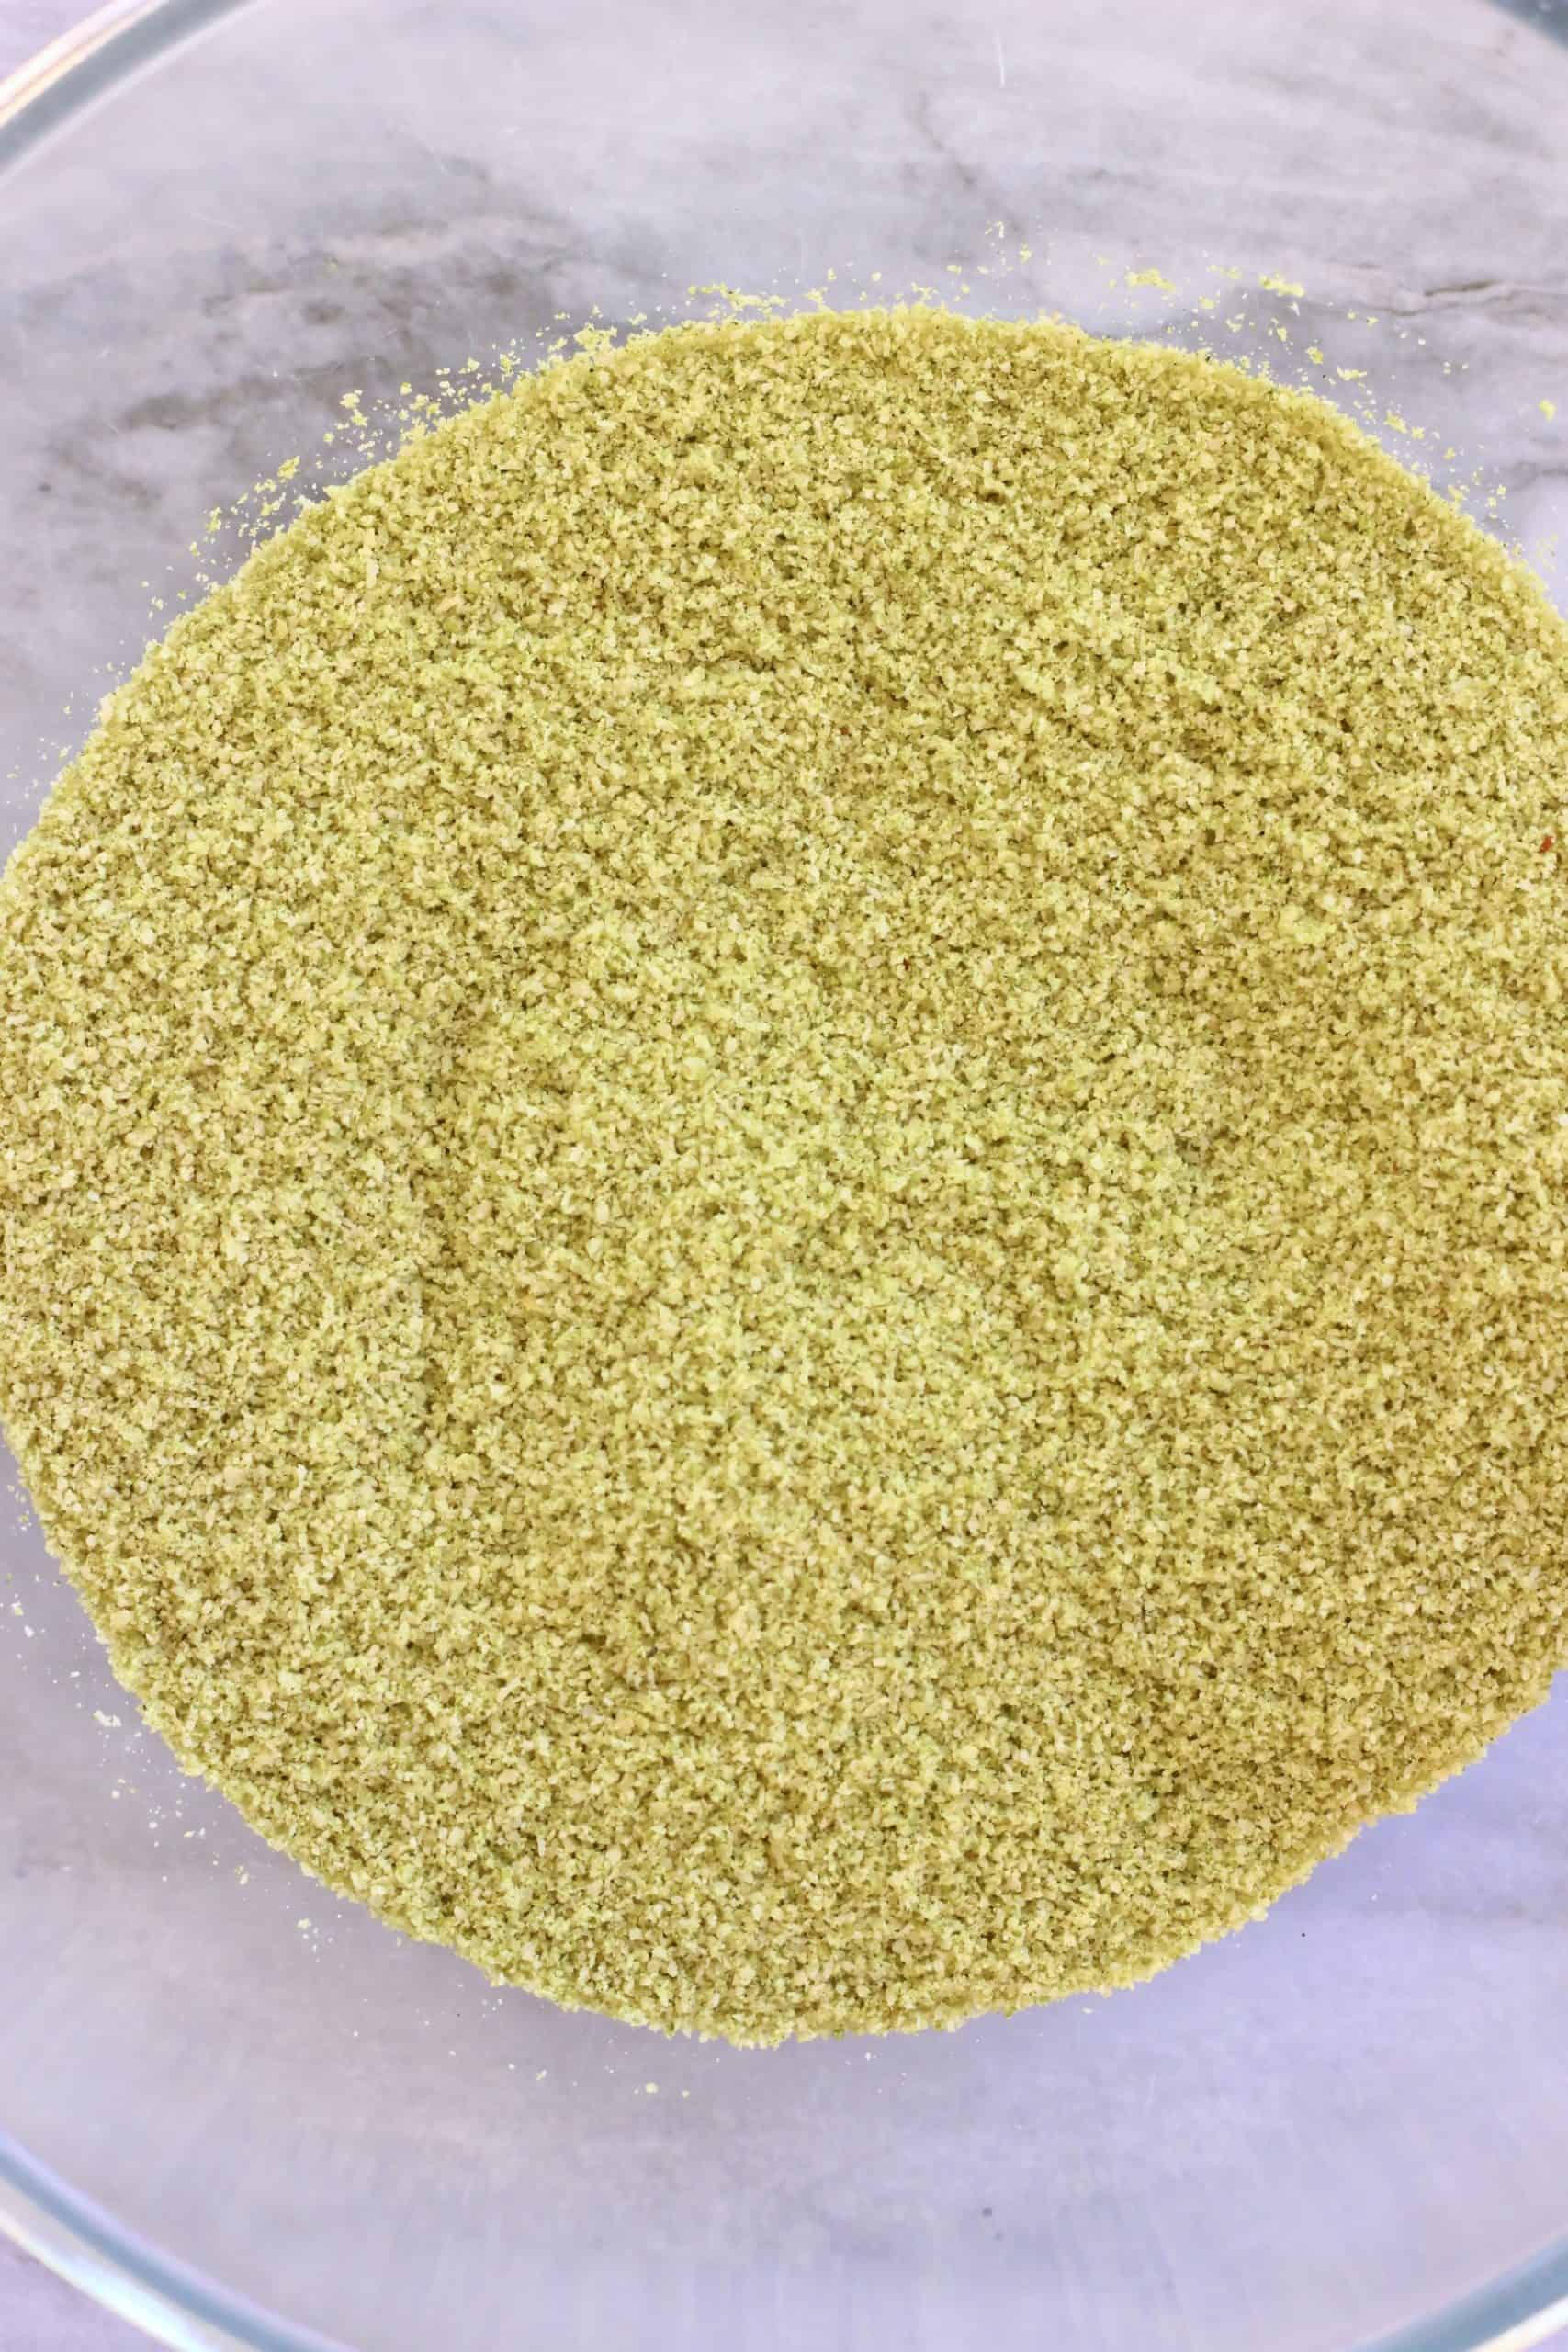 Ground almonds, brown rice flour, salt and matcha powder in a mixing bowl